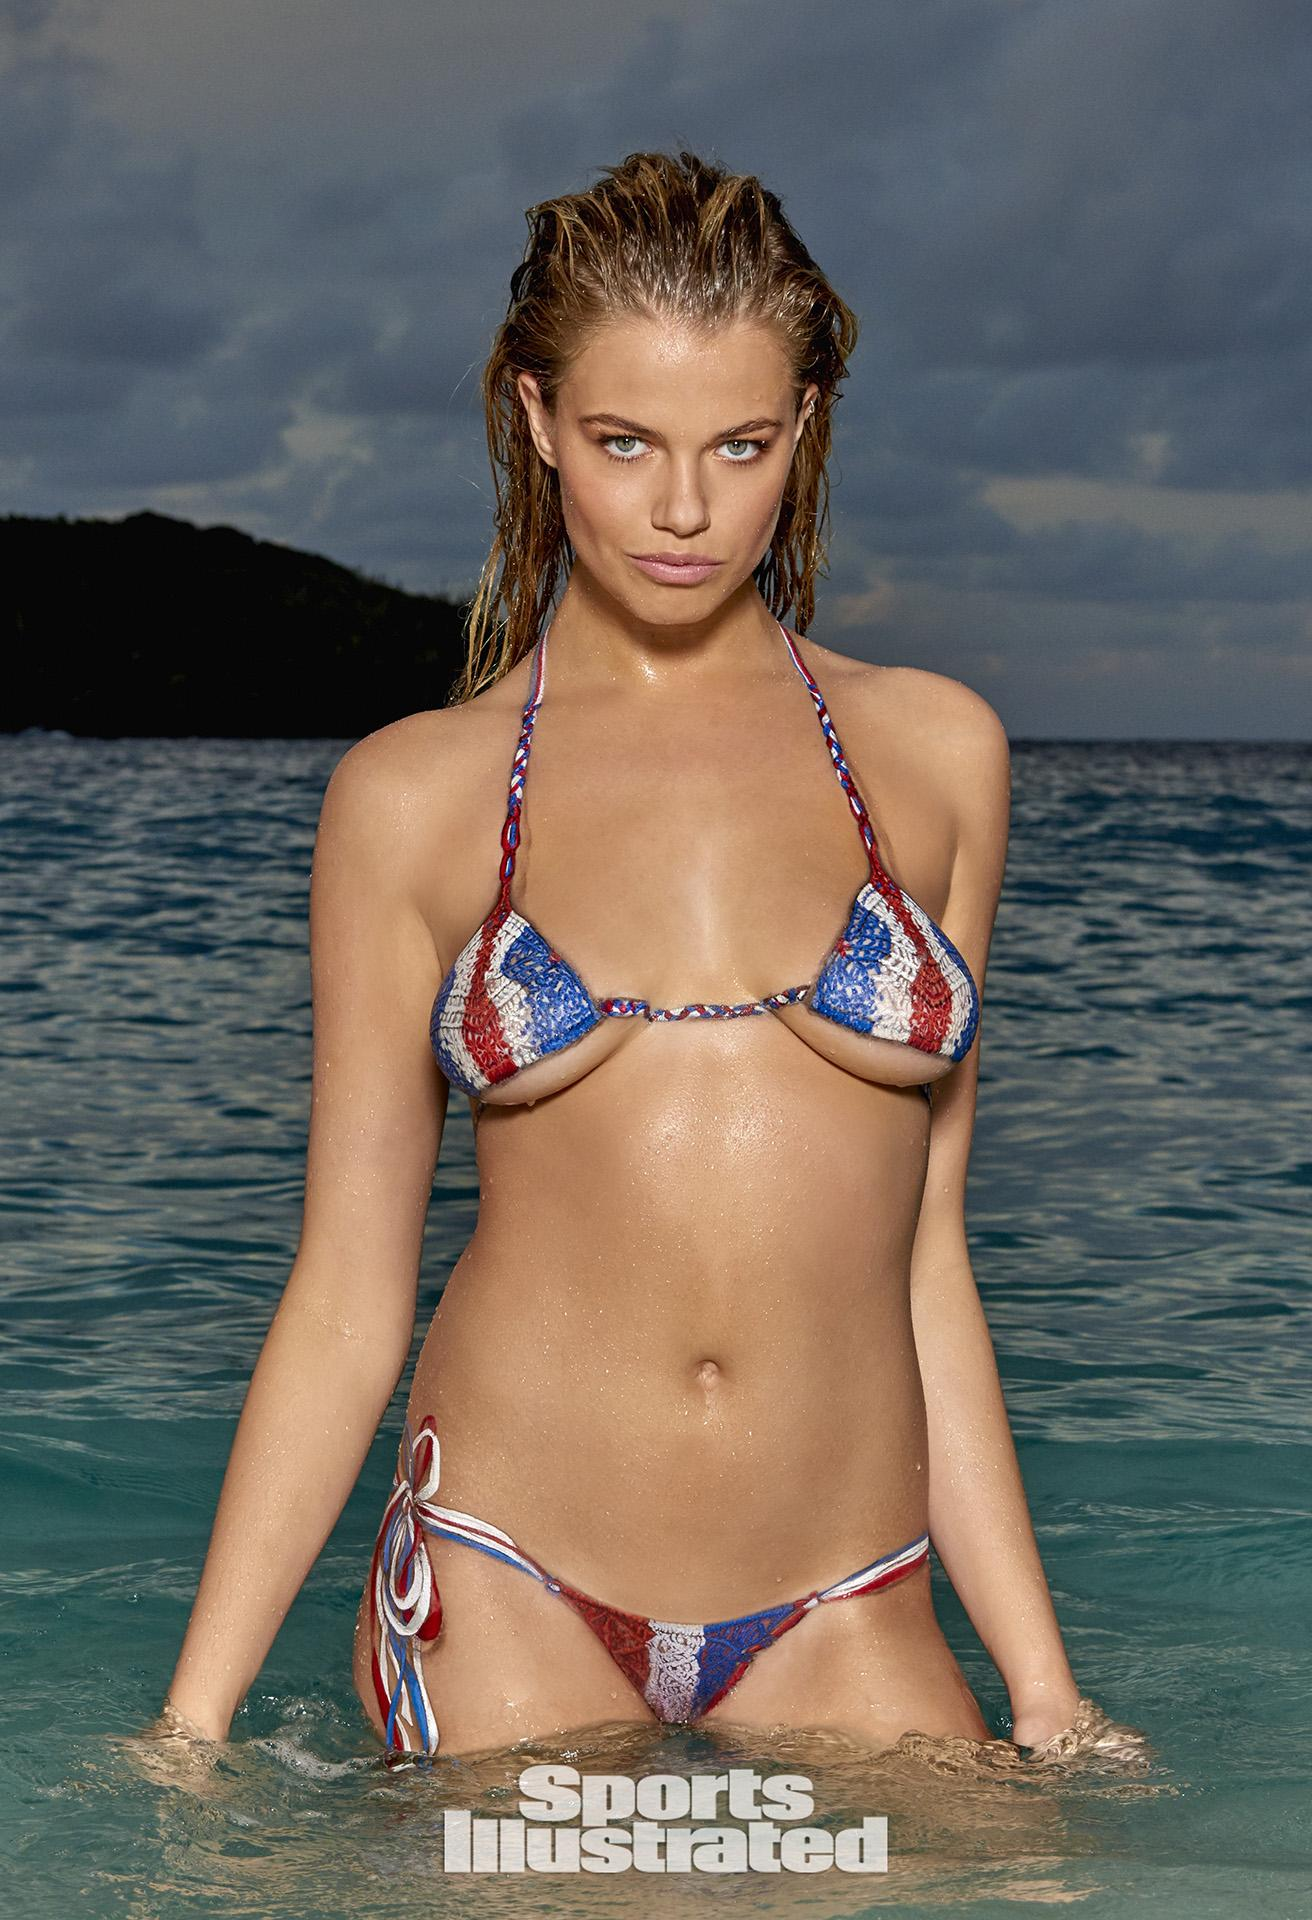 sports illustrated body paint uncensored